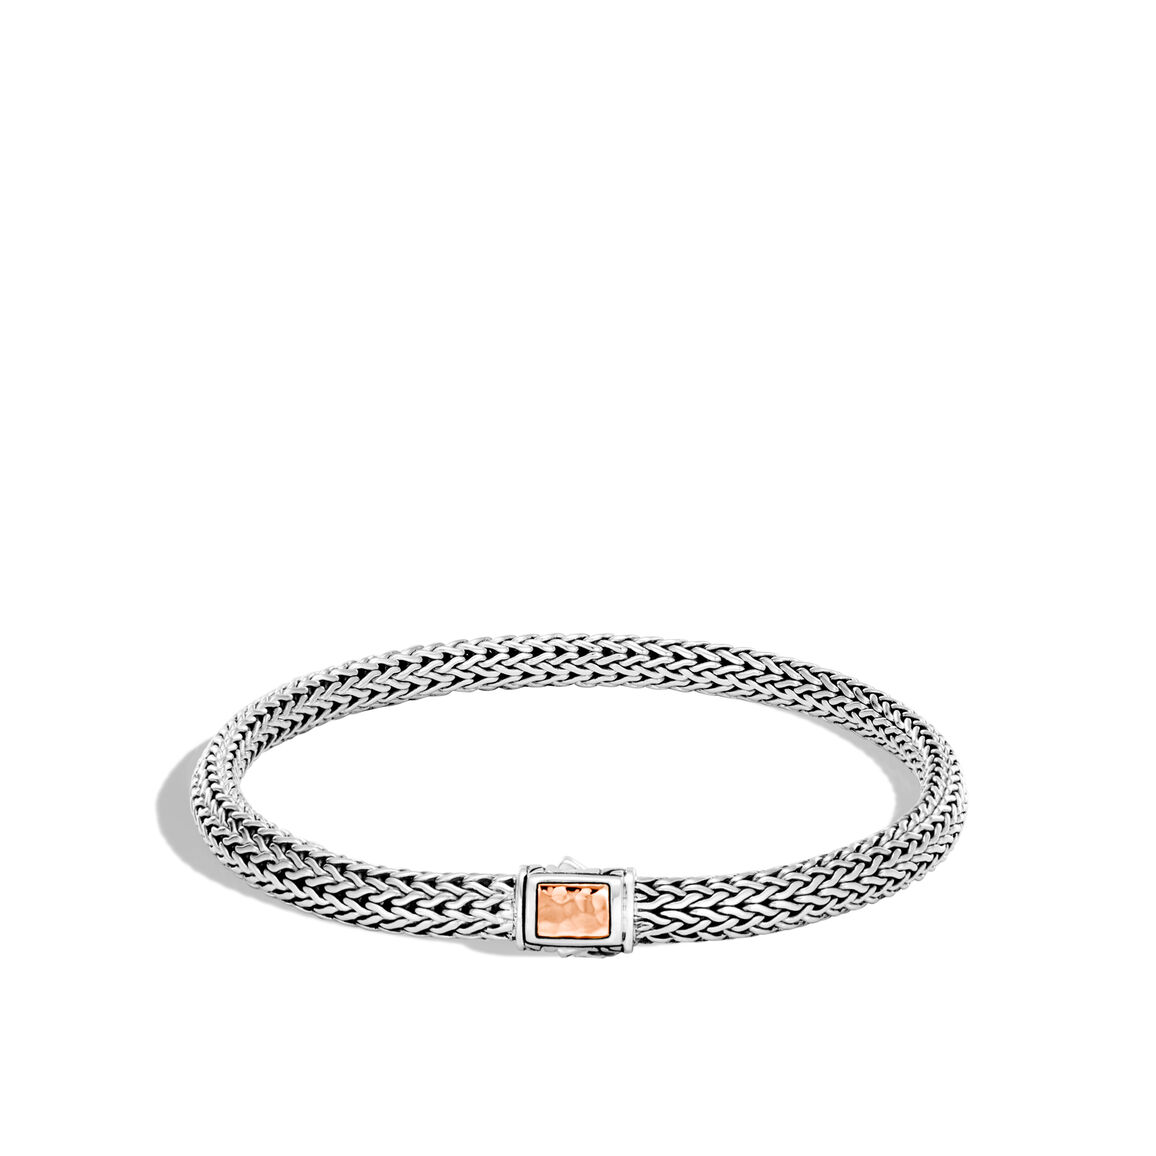 Classic Chain 5MM Hammered Clasp Bracelet, Silver, 18K Rose